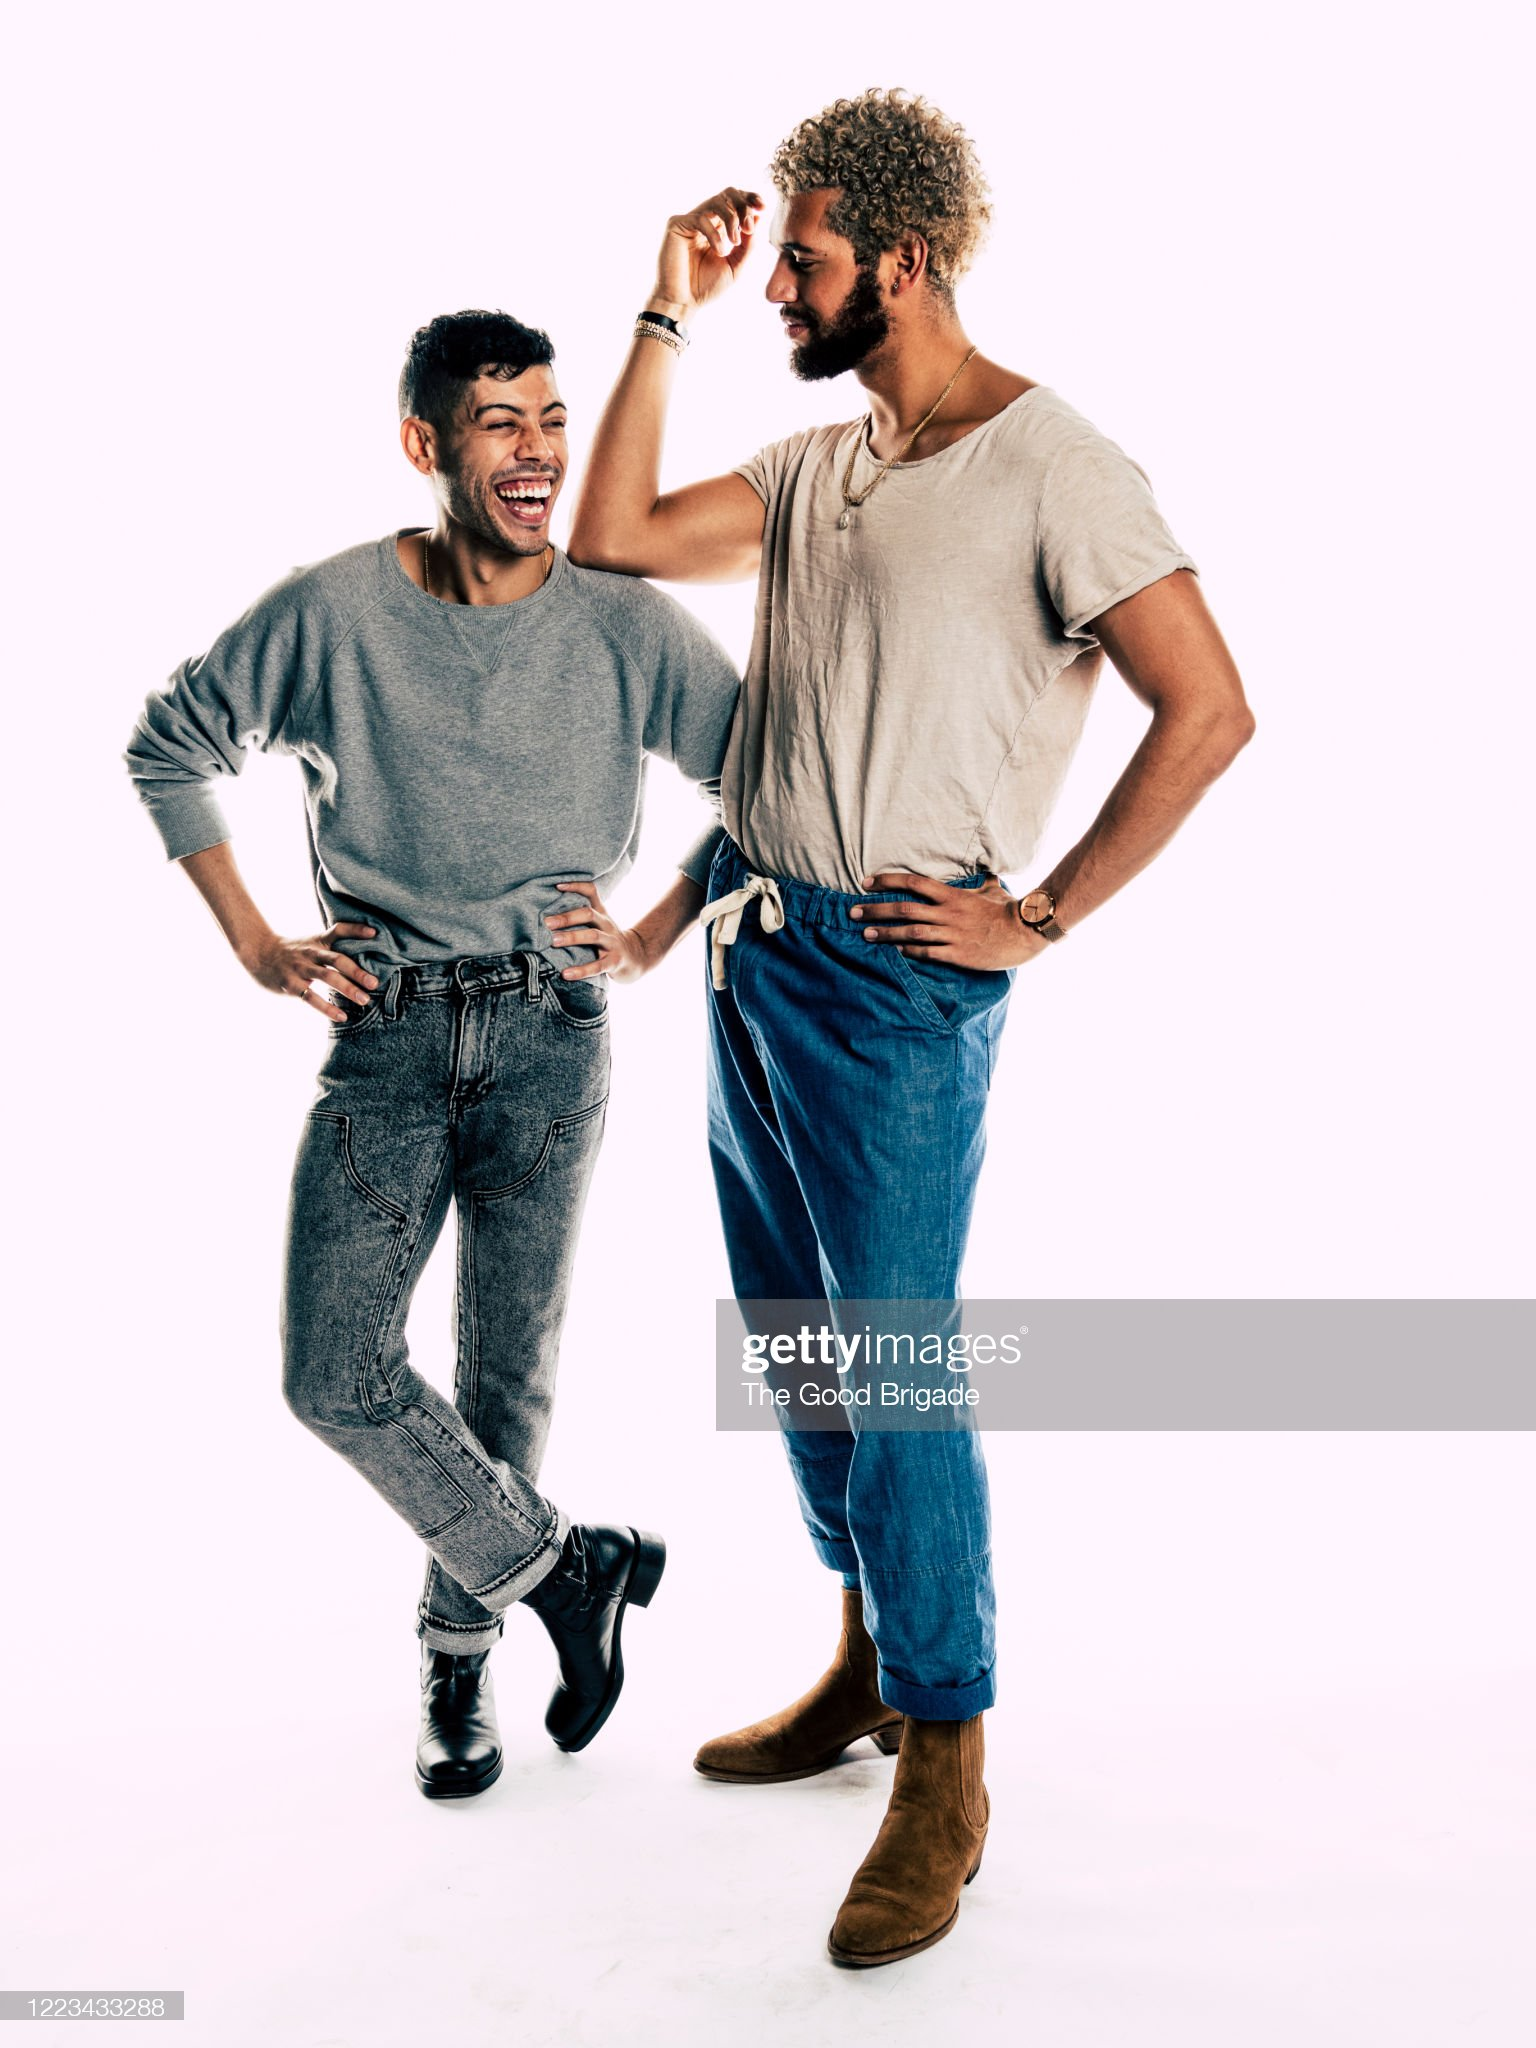 Studio portrait of two male friends : 圖庫照片